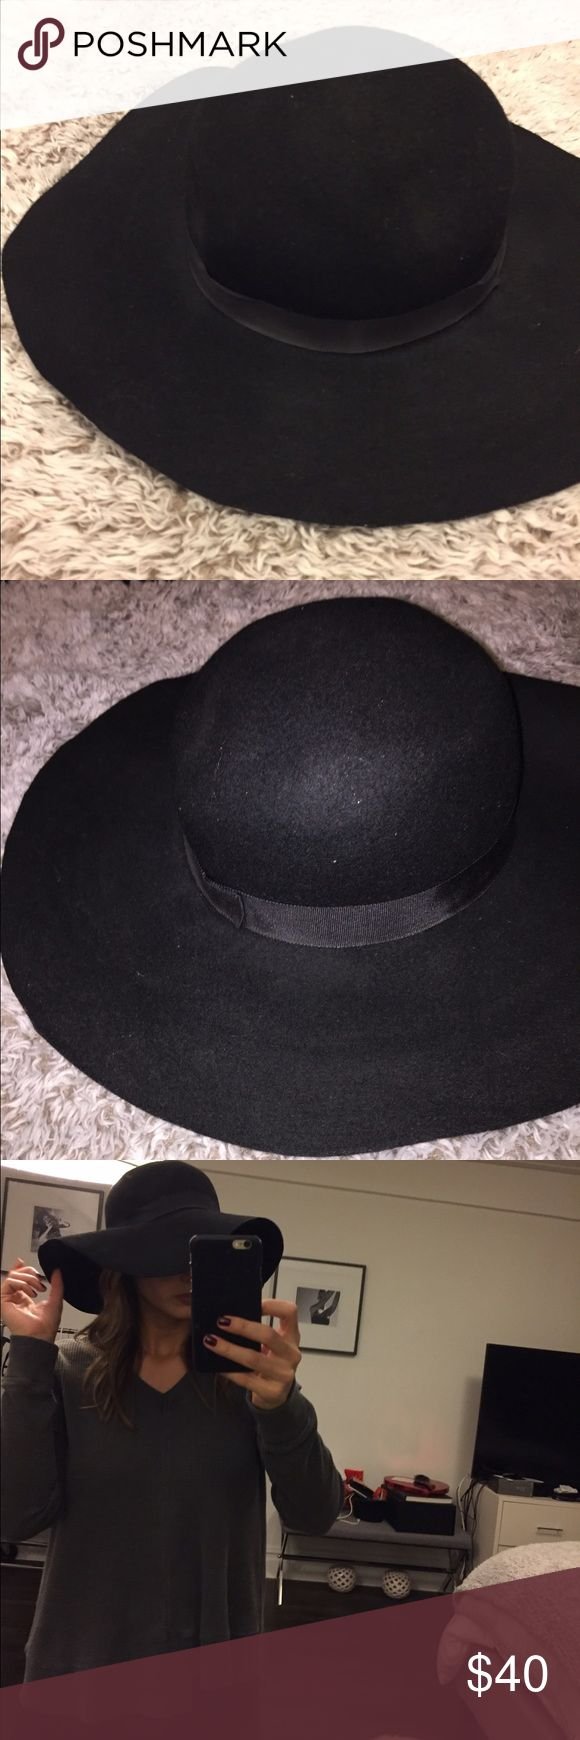 Topshop Fedora Hat- Black This topshop hat is a closet essential. Good for the summer or festival wear. Topshop Accessories Hats